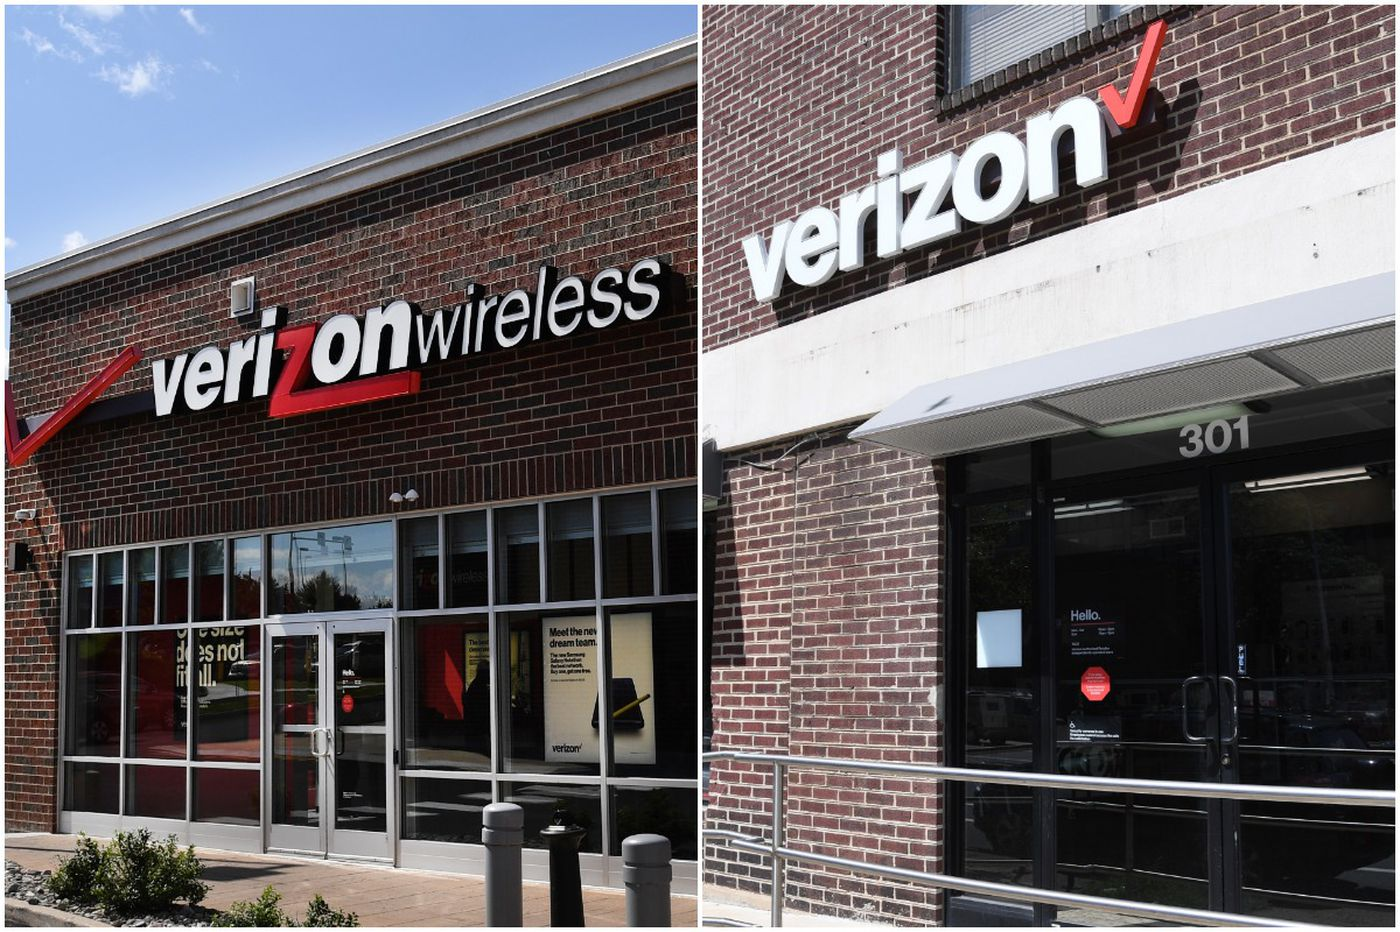 At this Verizon store not owned by Verizon, the staff sold a